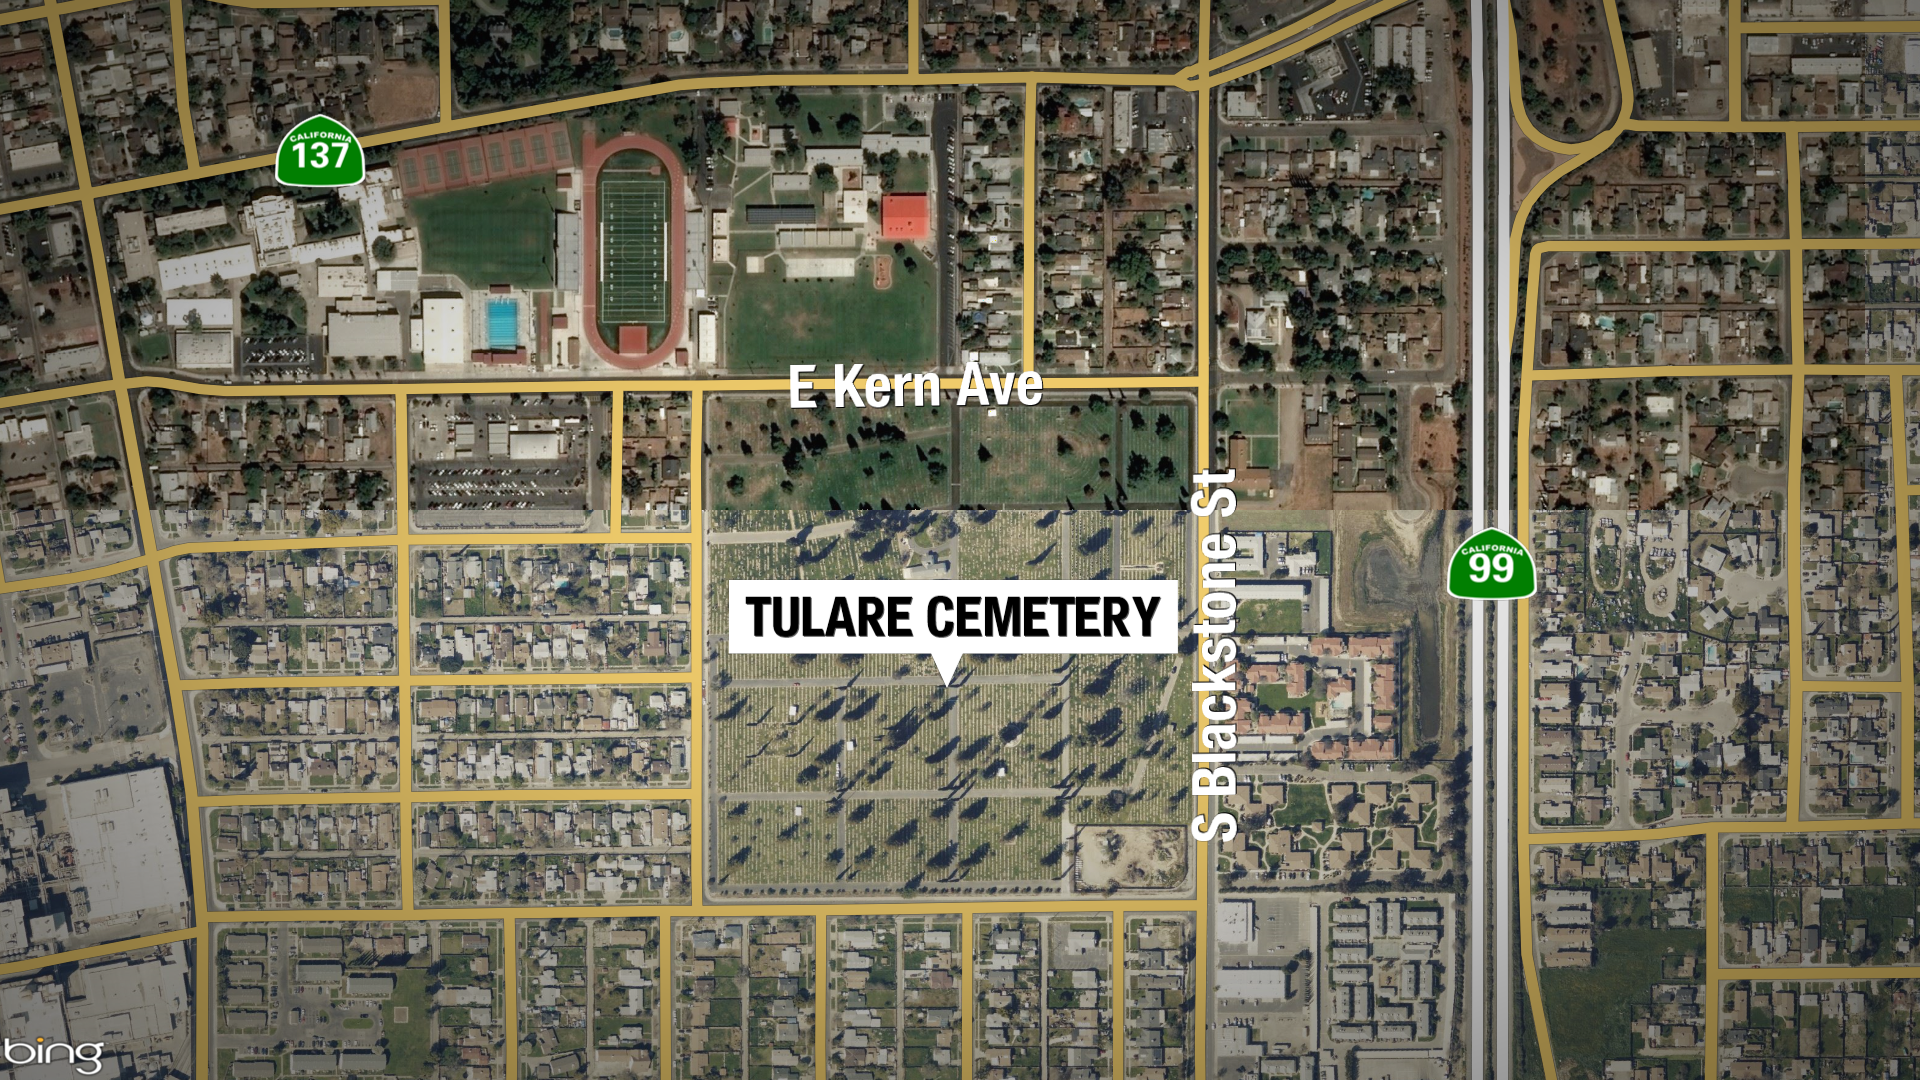 3-1 TULARE CEMETERY STABBING STILL MAP